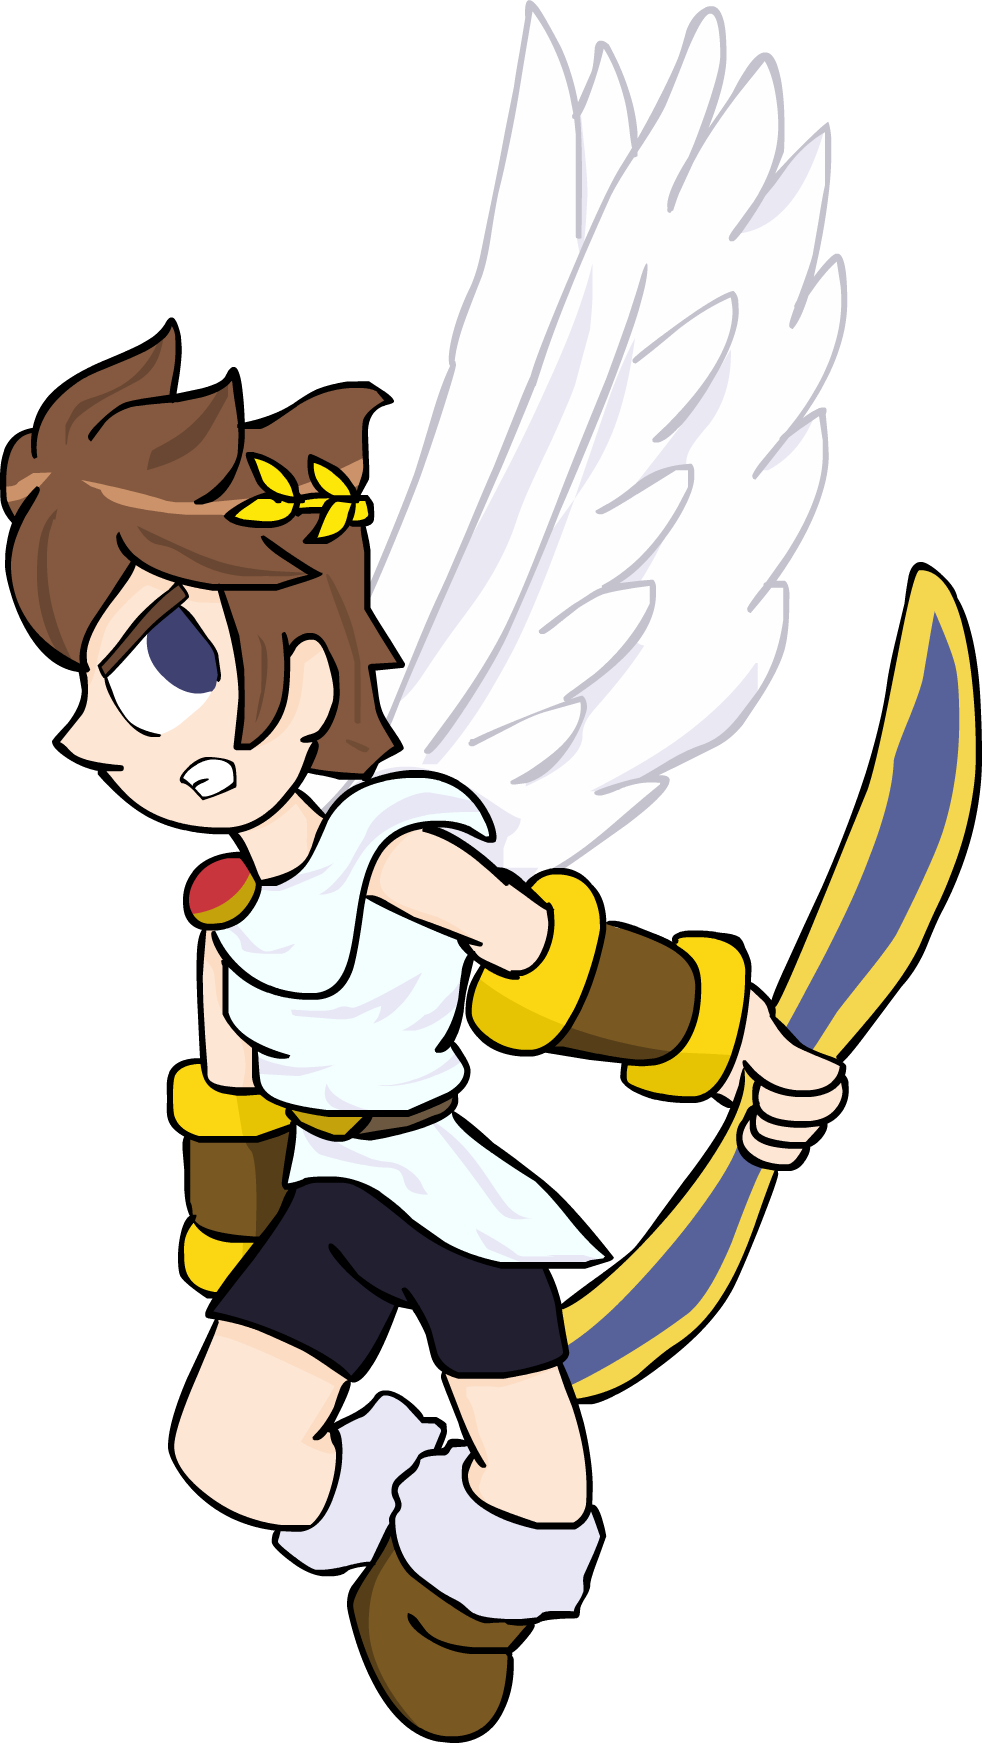 Pit Kid Icarus Uprising By RobyApolonio On DeviantArt